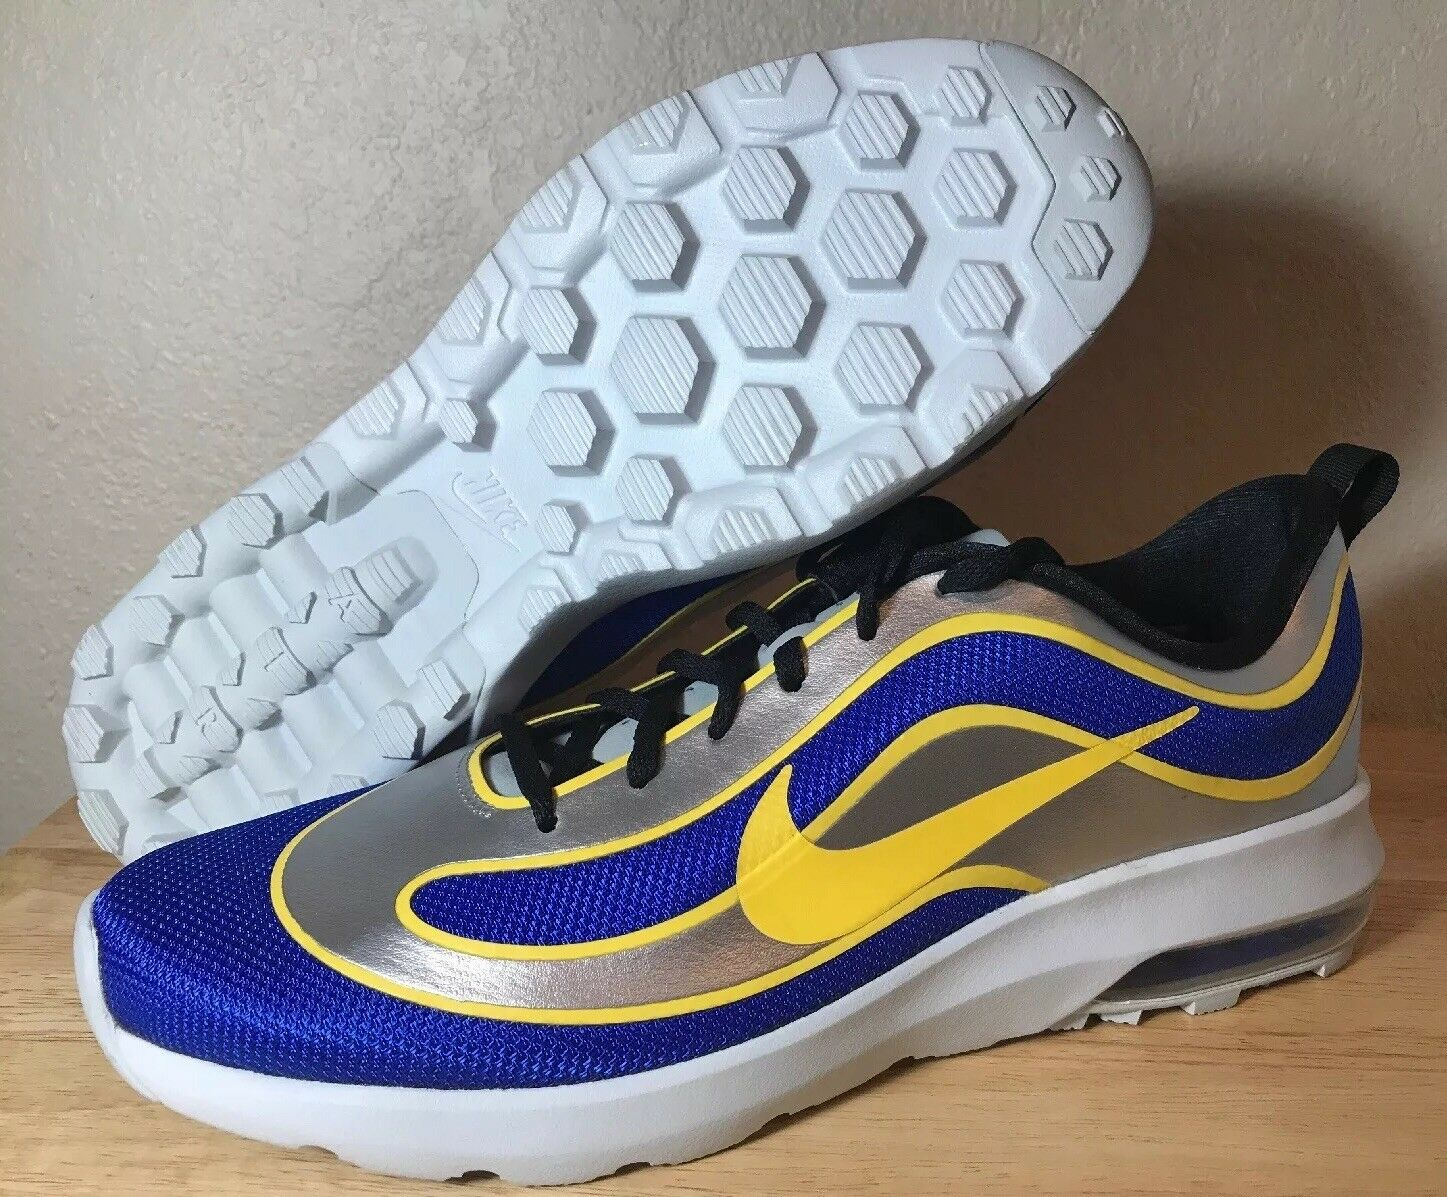 Nike Air Max Mercurial '98 QS SZ 12 Racer blueee Varsity Maize Mens New 850649-470